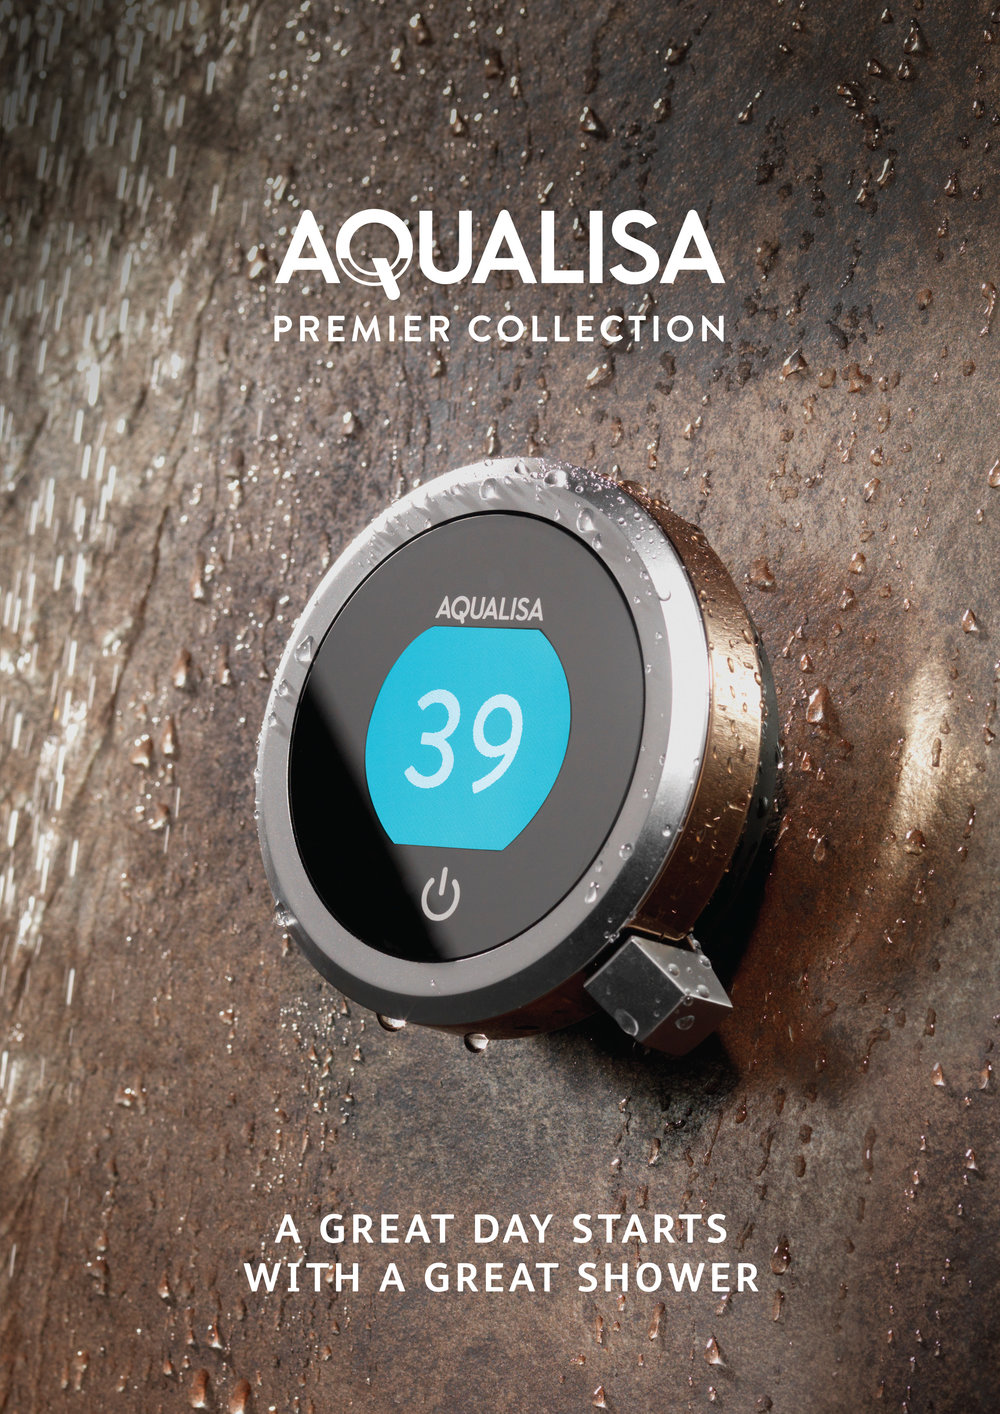 Aqualisa-Premier-Collection-Brochure-Waterloo Bathrooms Dublin.jpg